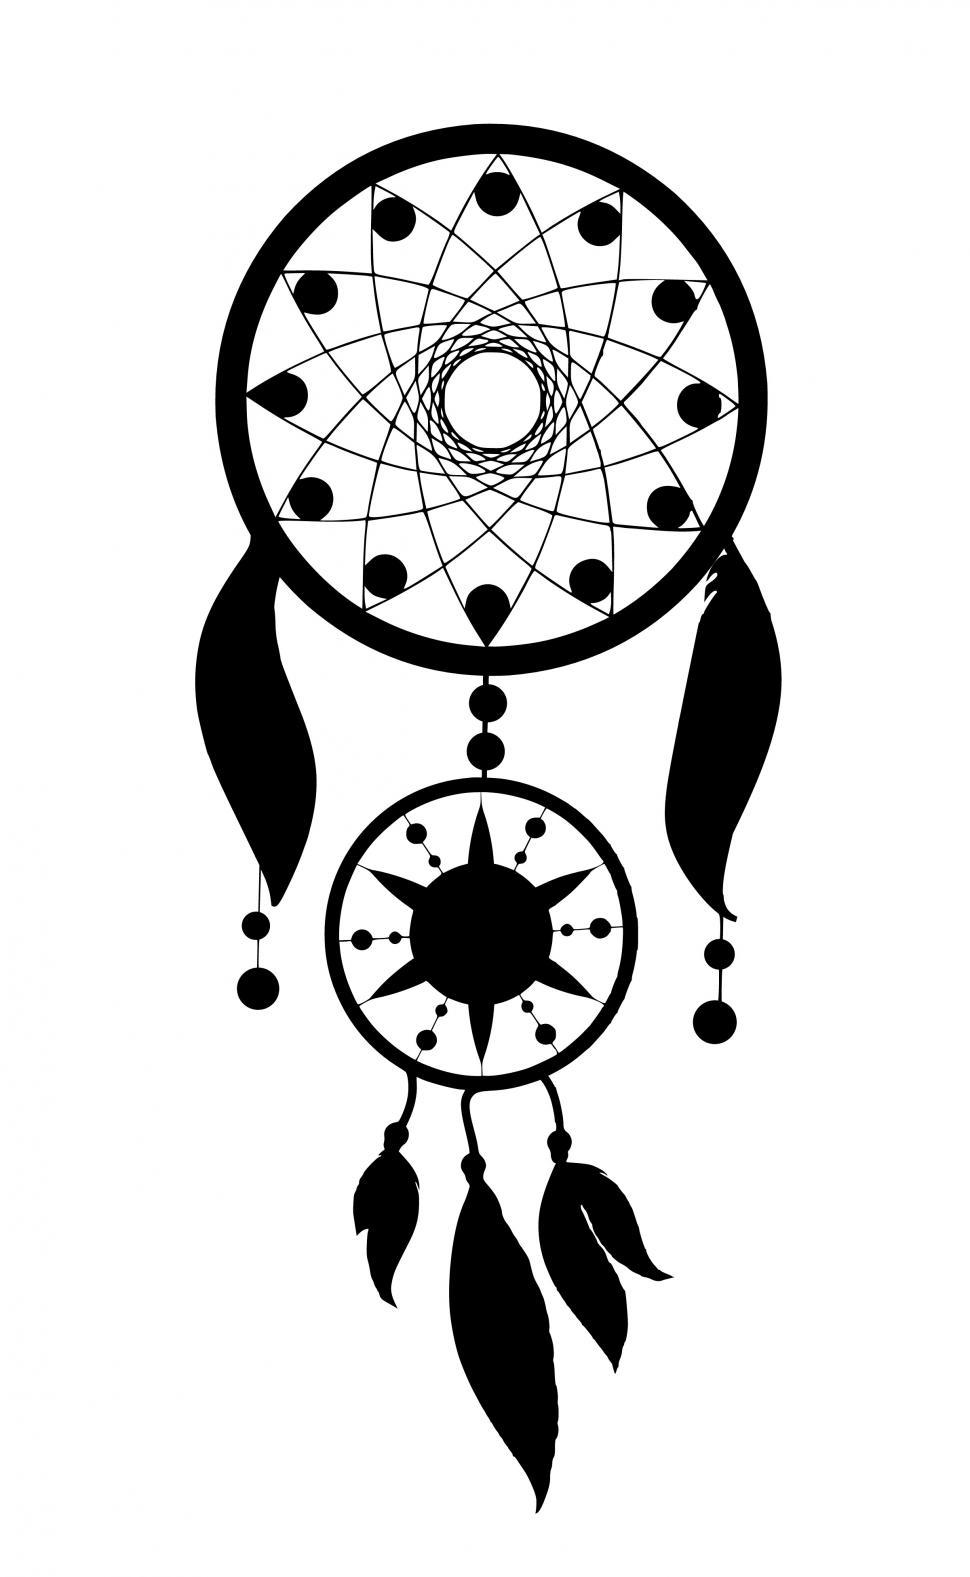 Download Free Stock HD Photo of dream catcher Silhouette  Online